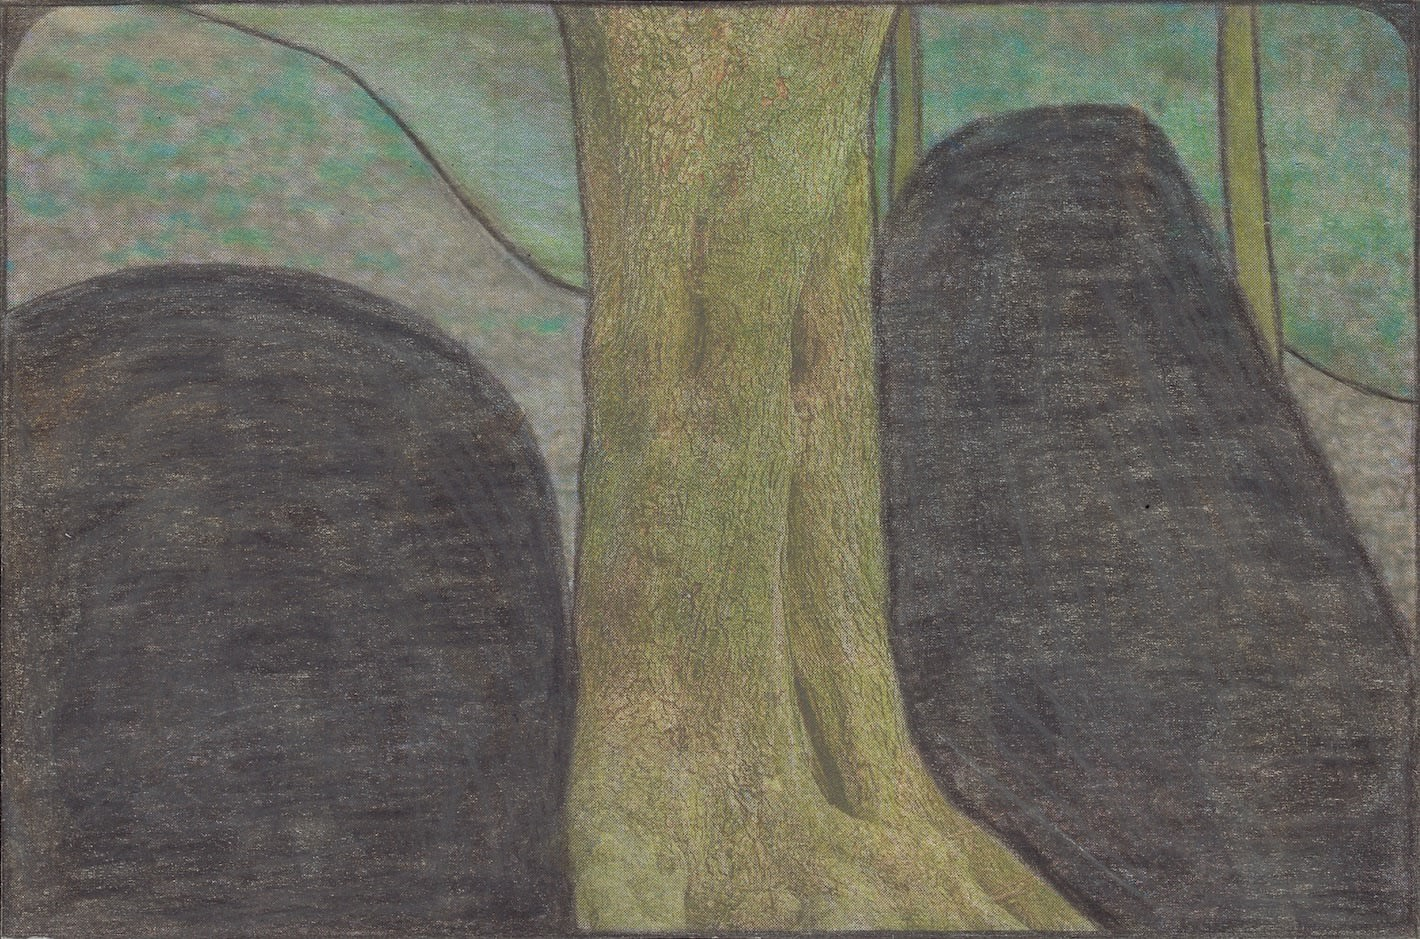 Untitled , 2020 Graphite and colored pencils on newsprint clip mounted on paper 3 7/8 x 5 3/4 in. (9.7 x 14.6 cm.) (LpS 374) $3,600